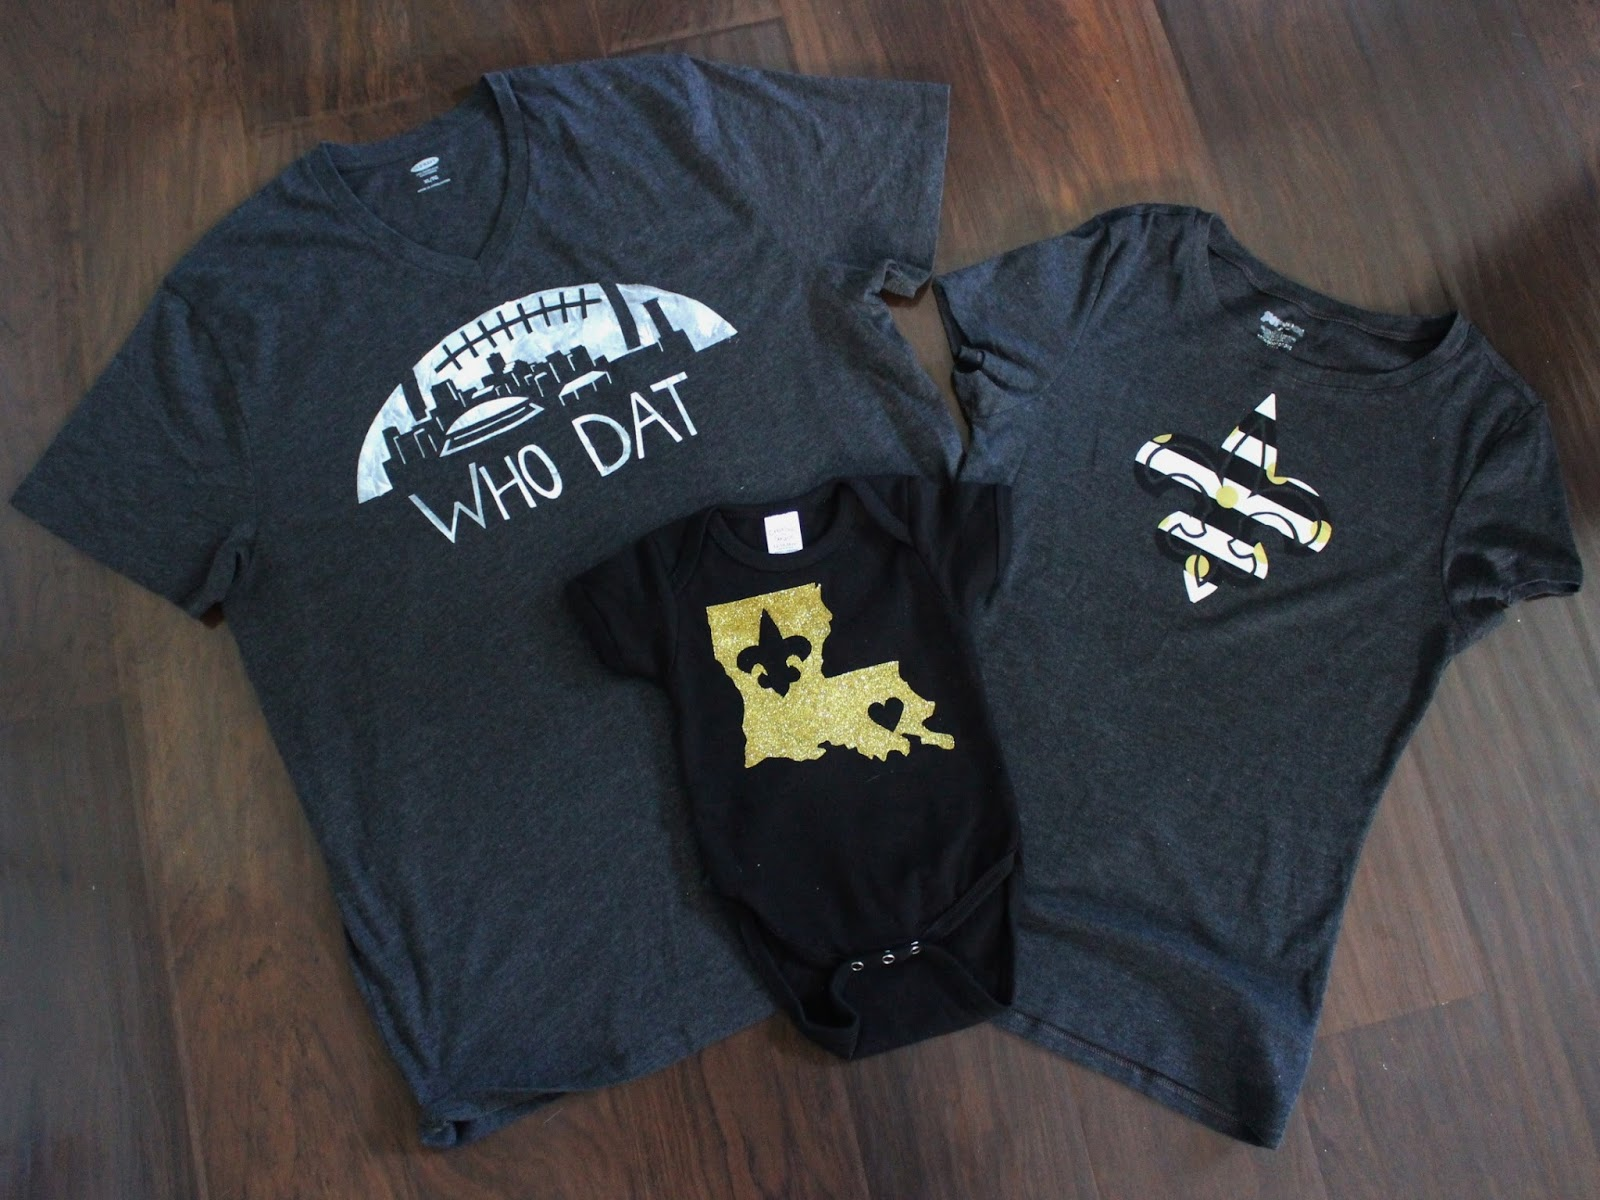 Nadias diy projects 3 diy new orleans saints t shirt designs that means lots of diy saints gear this sunday the mercedes benz superdome will host their first game of the season make your own diy t shirts to the solutioingenieria Image collections